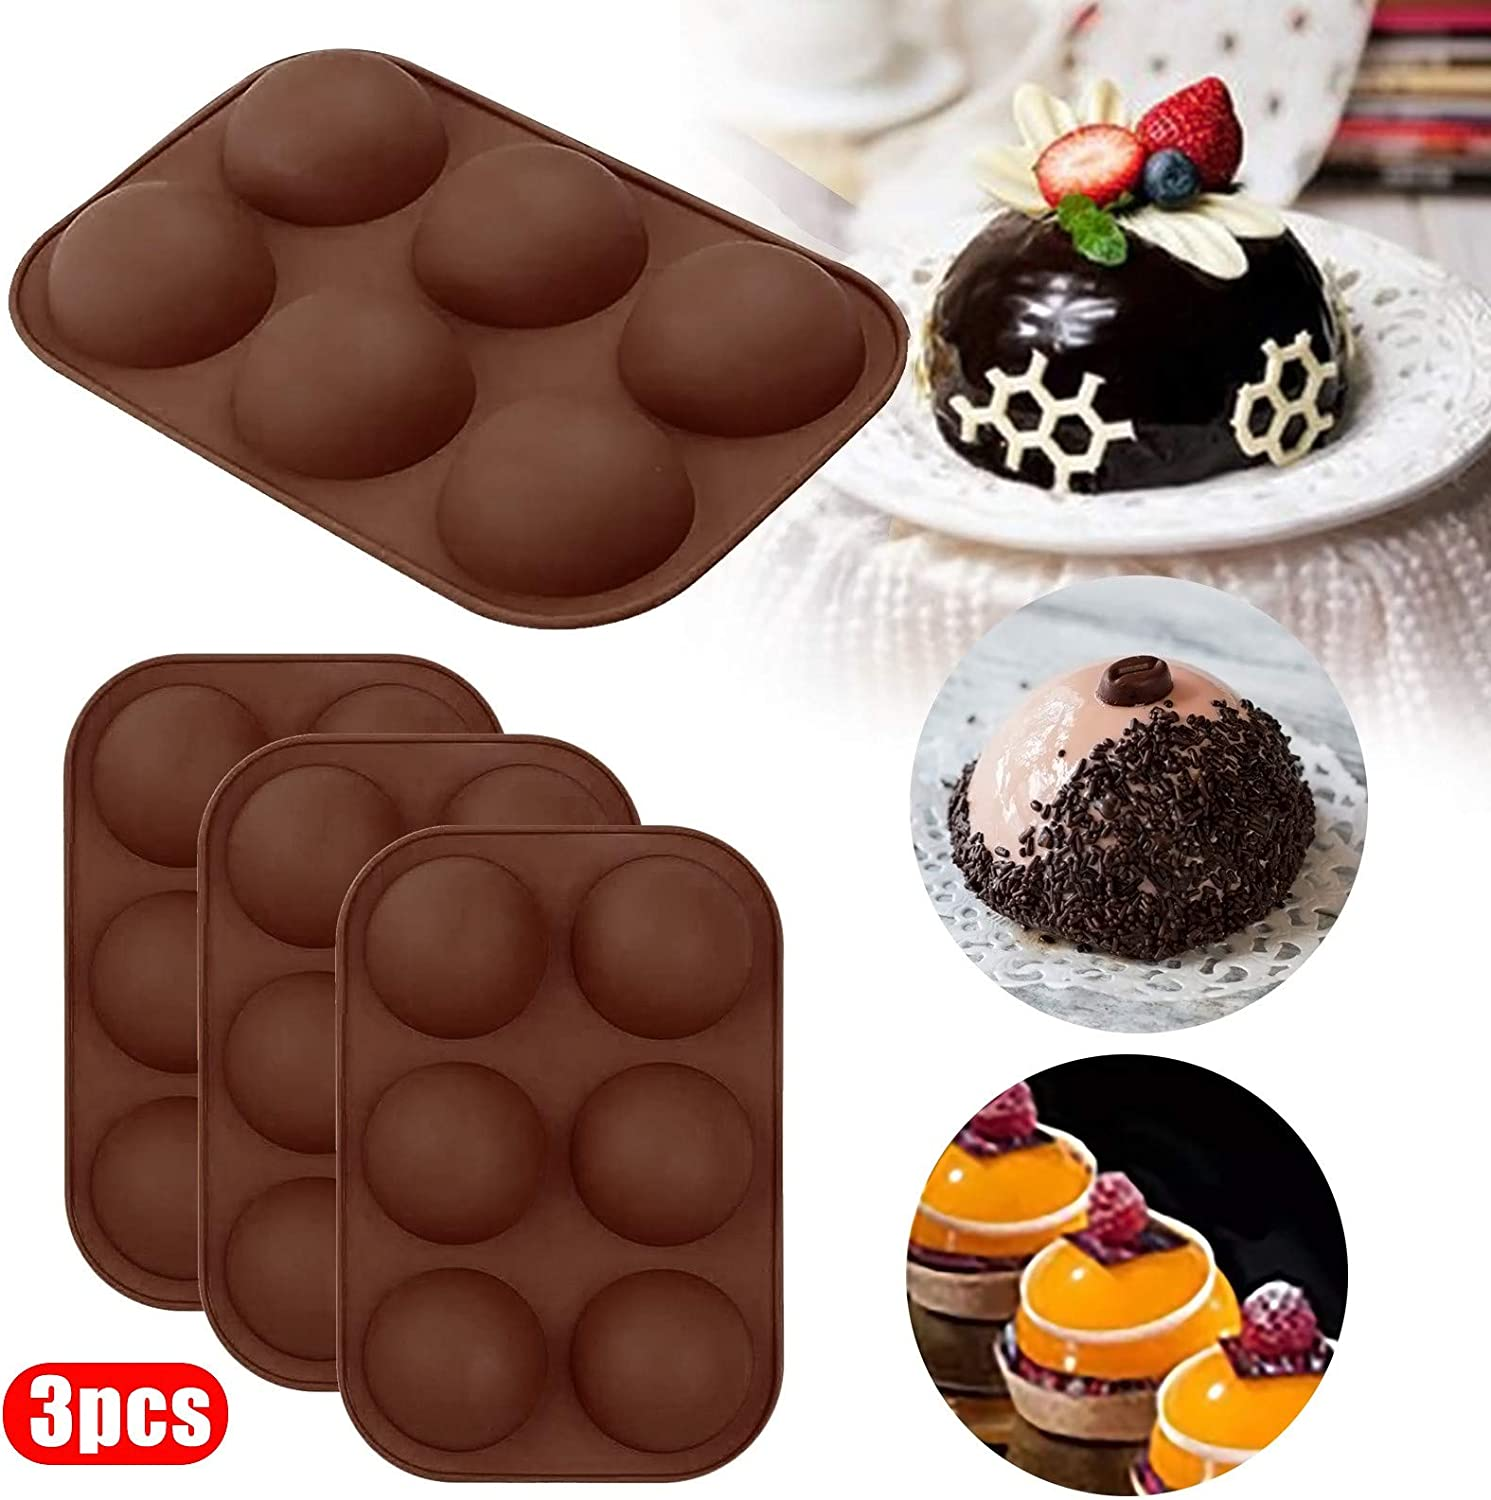 Bomb 6 Holes Chocolate Ball Molds DIY Baking Ball Mold for Chocolate Dome Mousse 3 Pcs Sphere Silicone Mold 2.5 Cake 1 PC, J Jelly